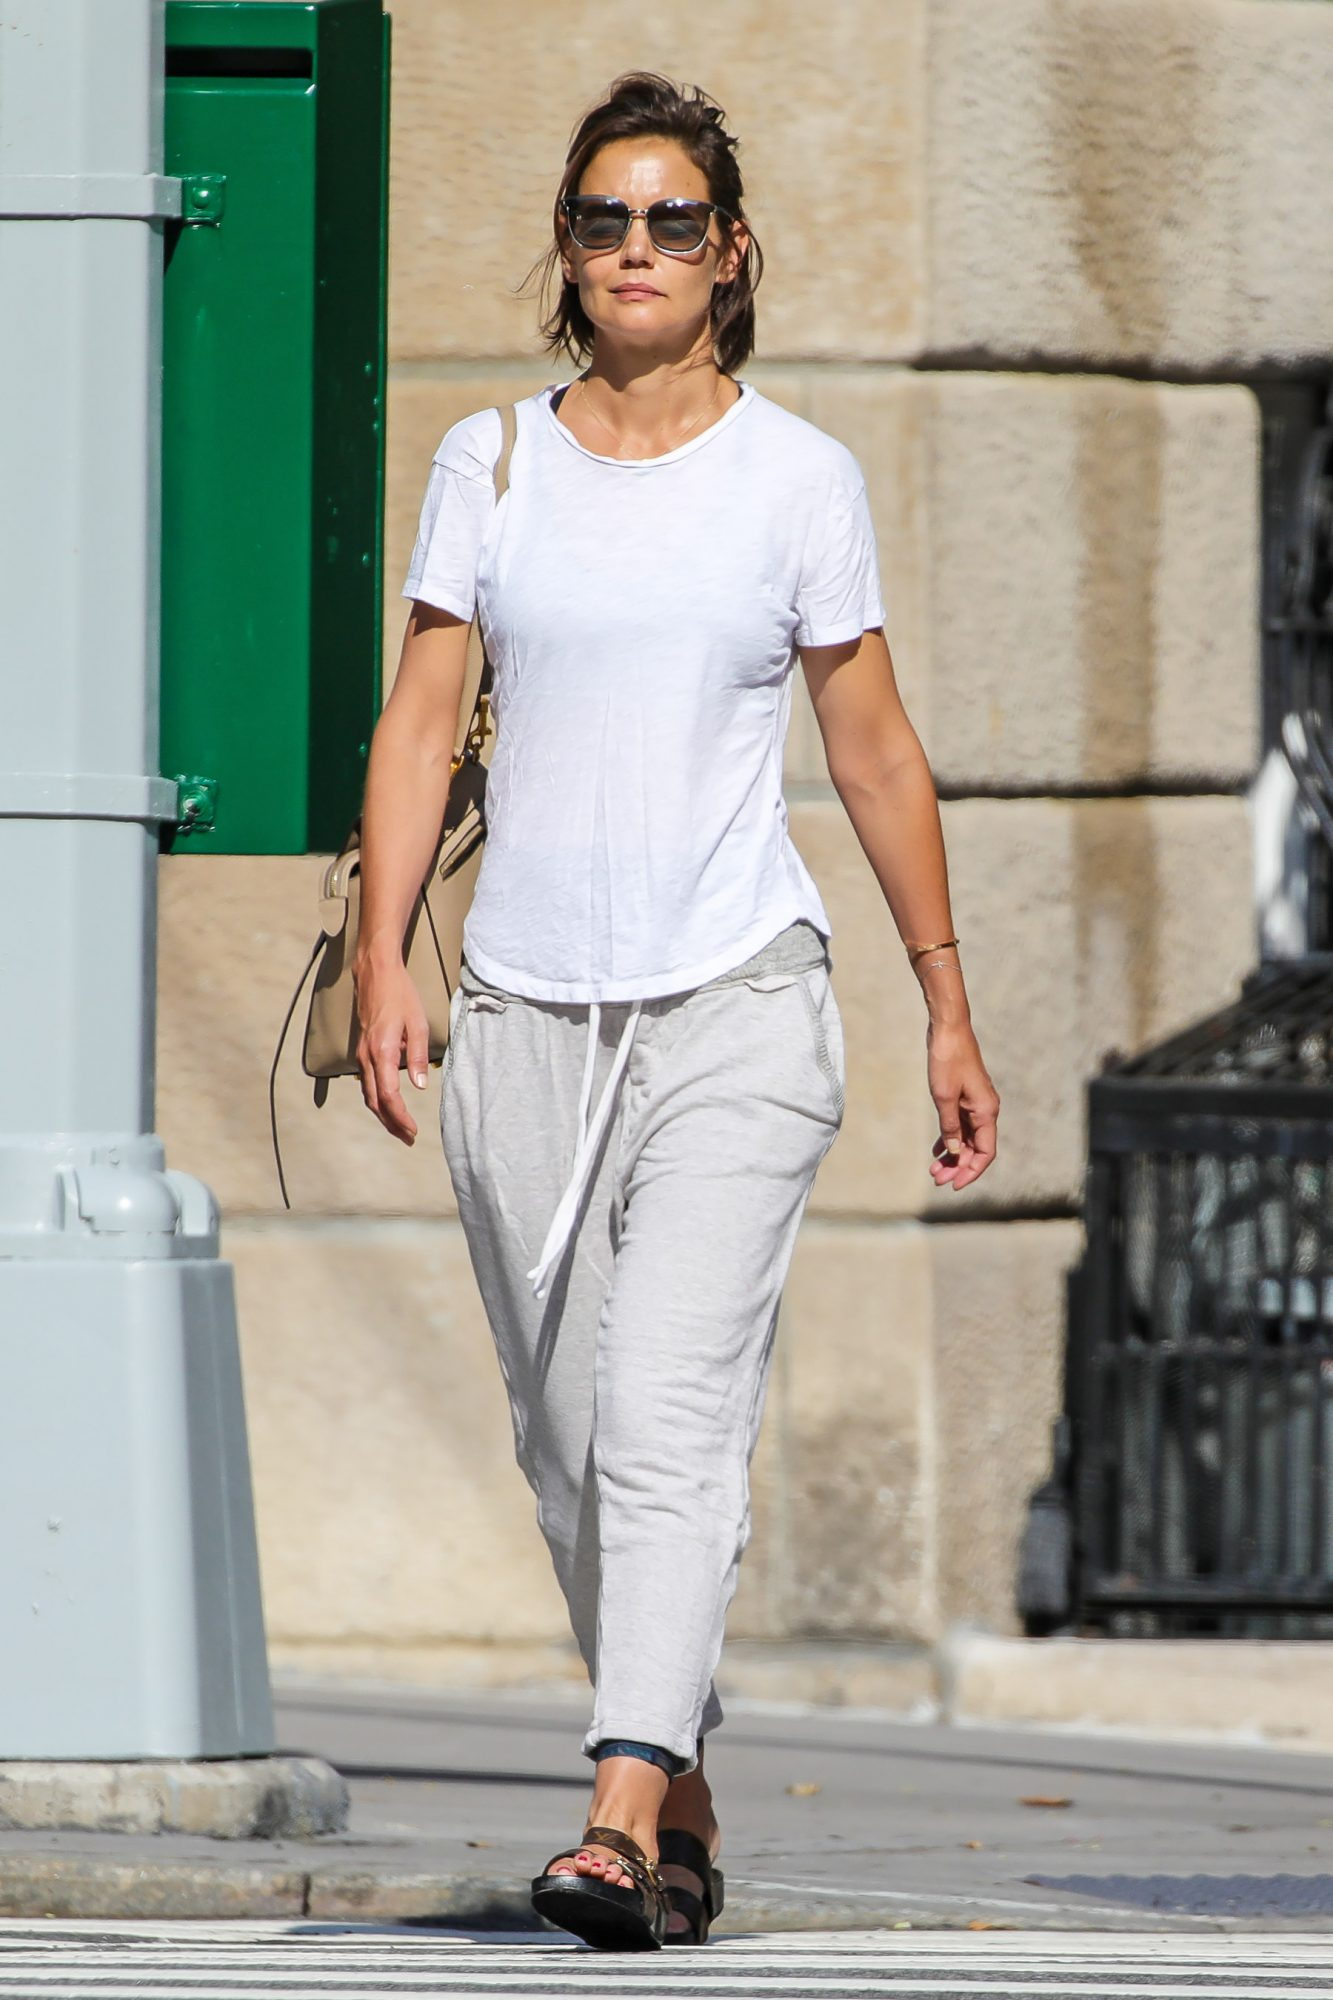 EXCLUSIVE: Katie Holmes Spotted Heading To Gym In The Morning In New York City